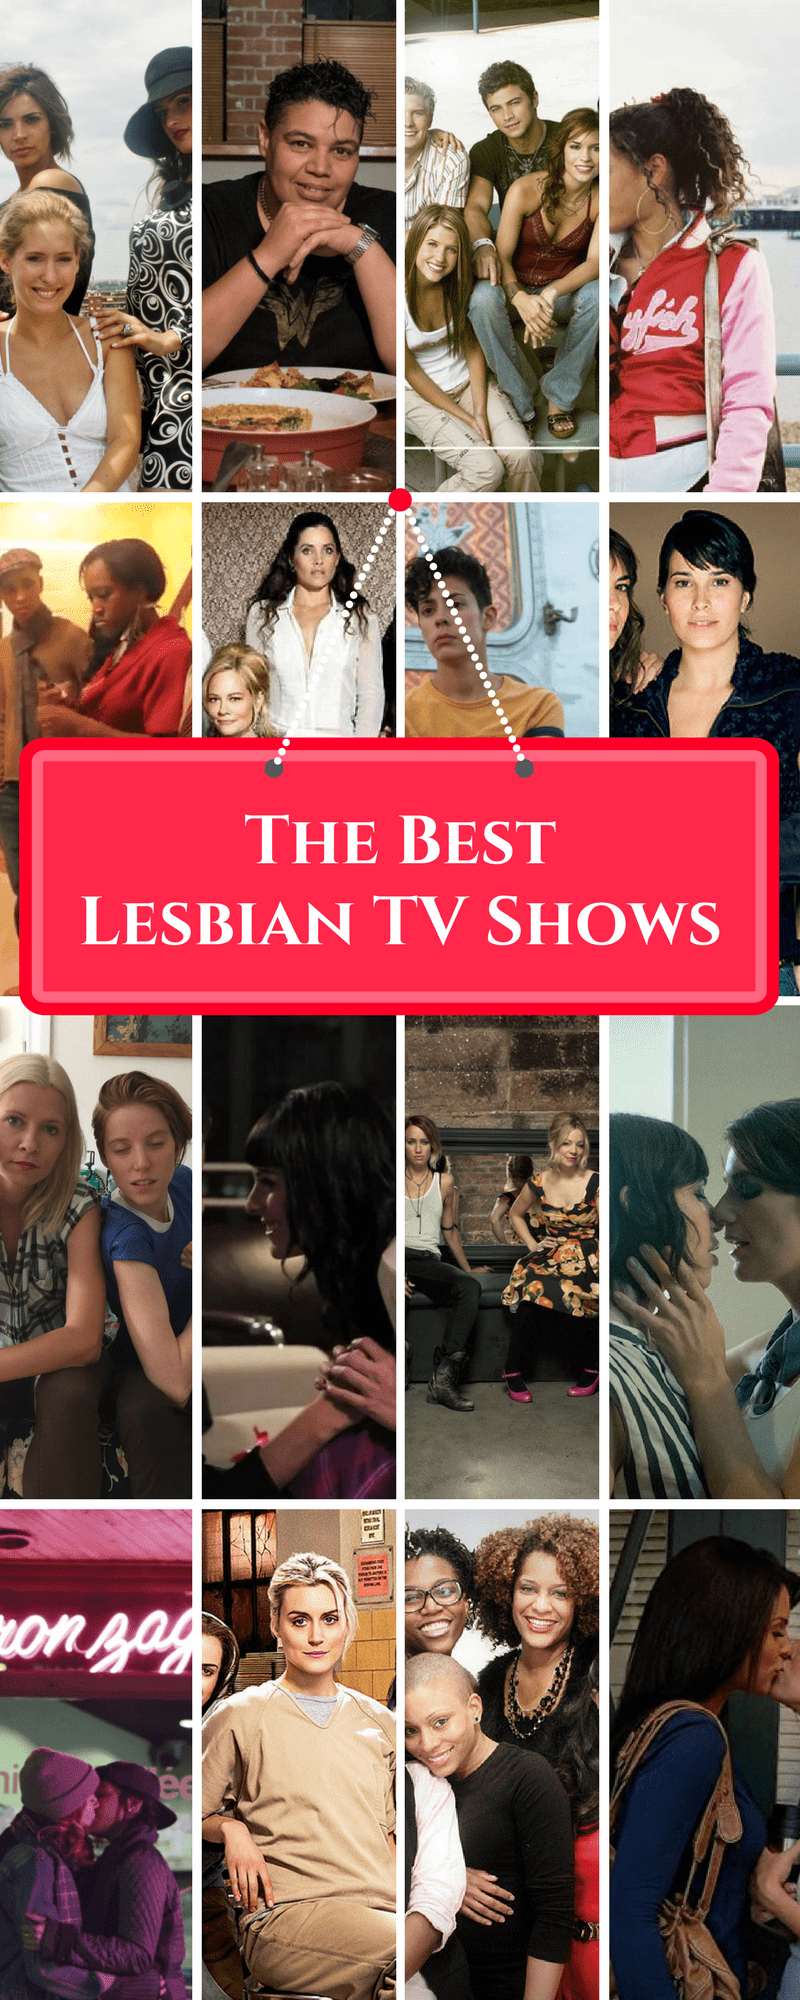 The Best Lesbian TV Shows and web series Pinterest